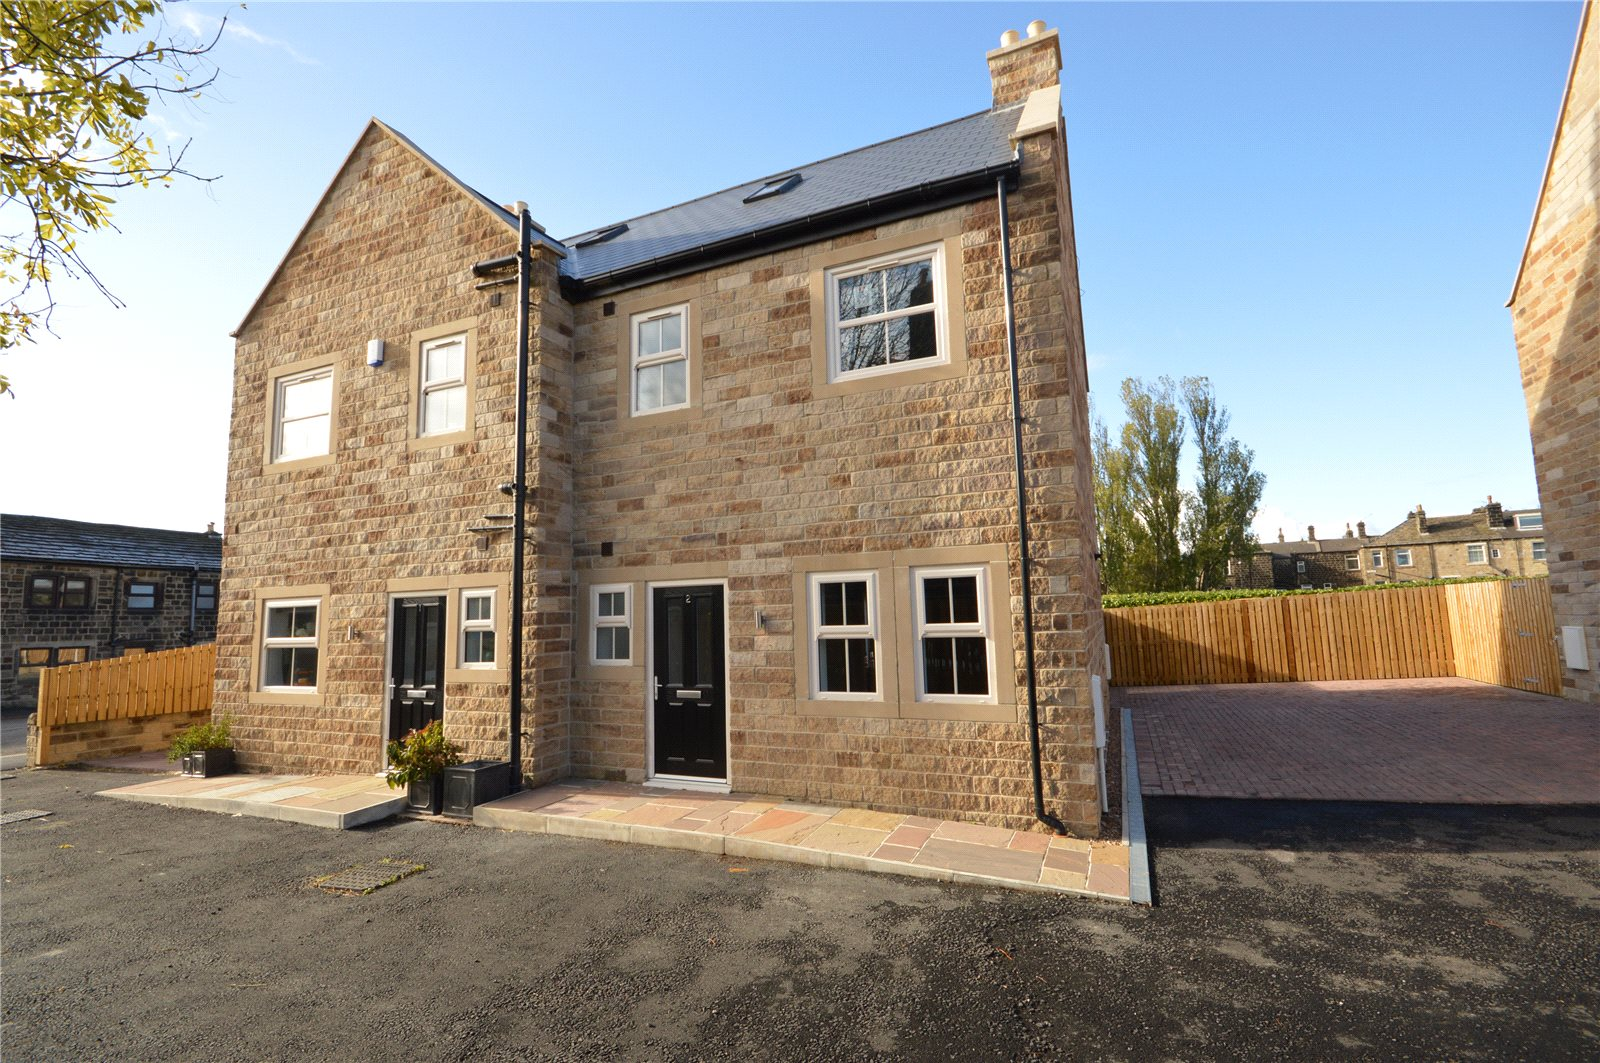 Property for sale in Guiseley, exterior new build